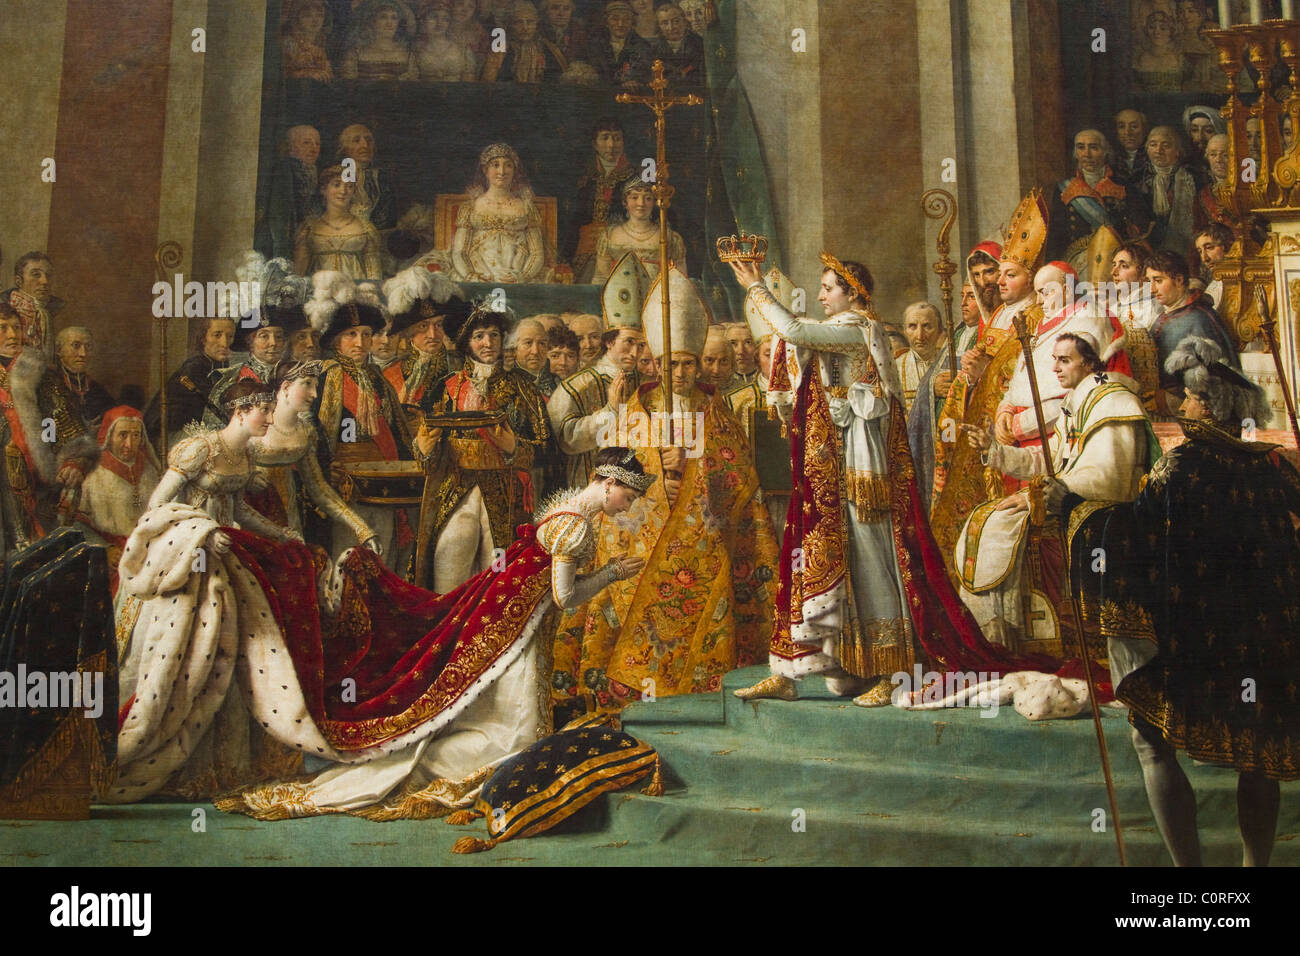 Painting Of Coronation Of Napoleon In A Museum Musee Du